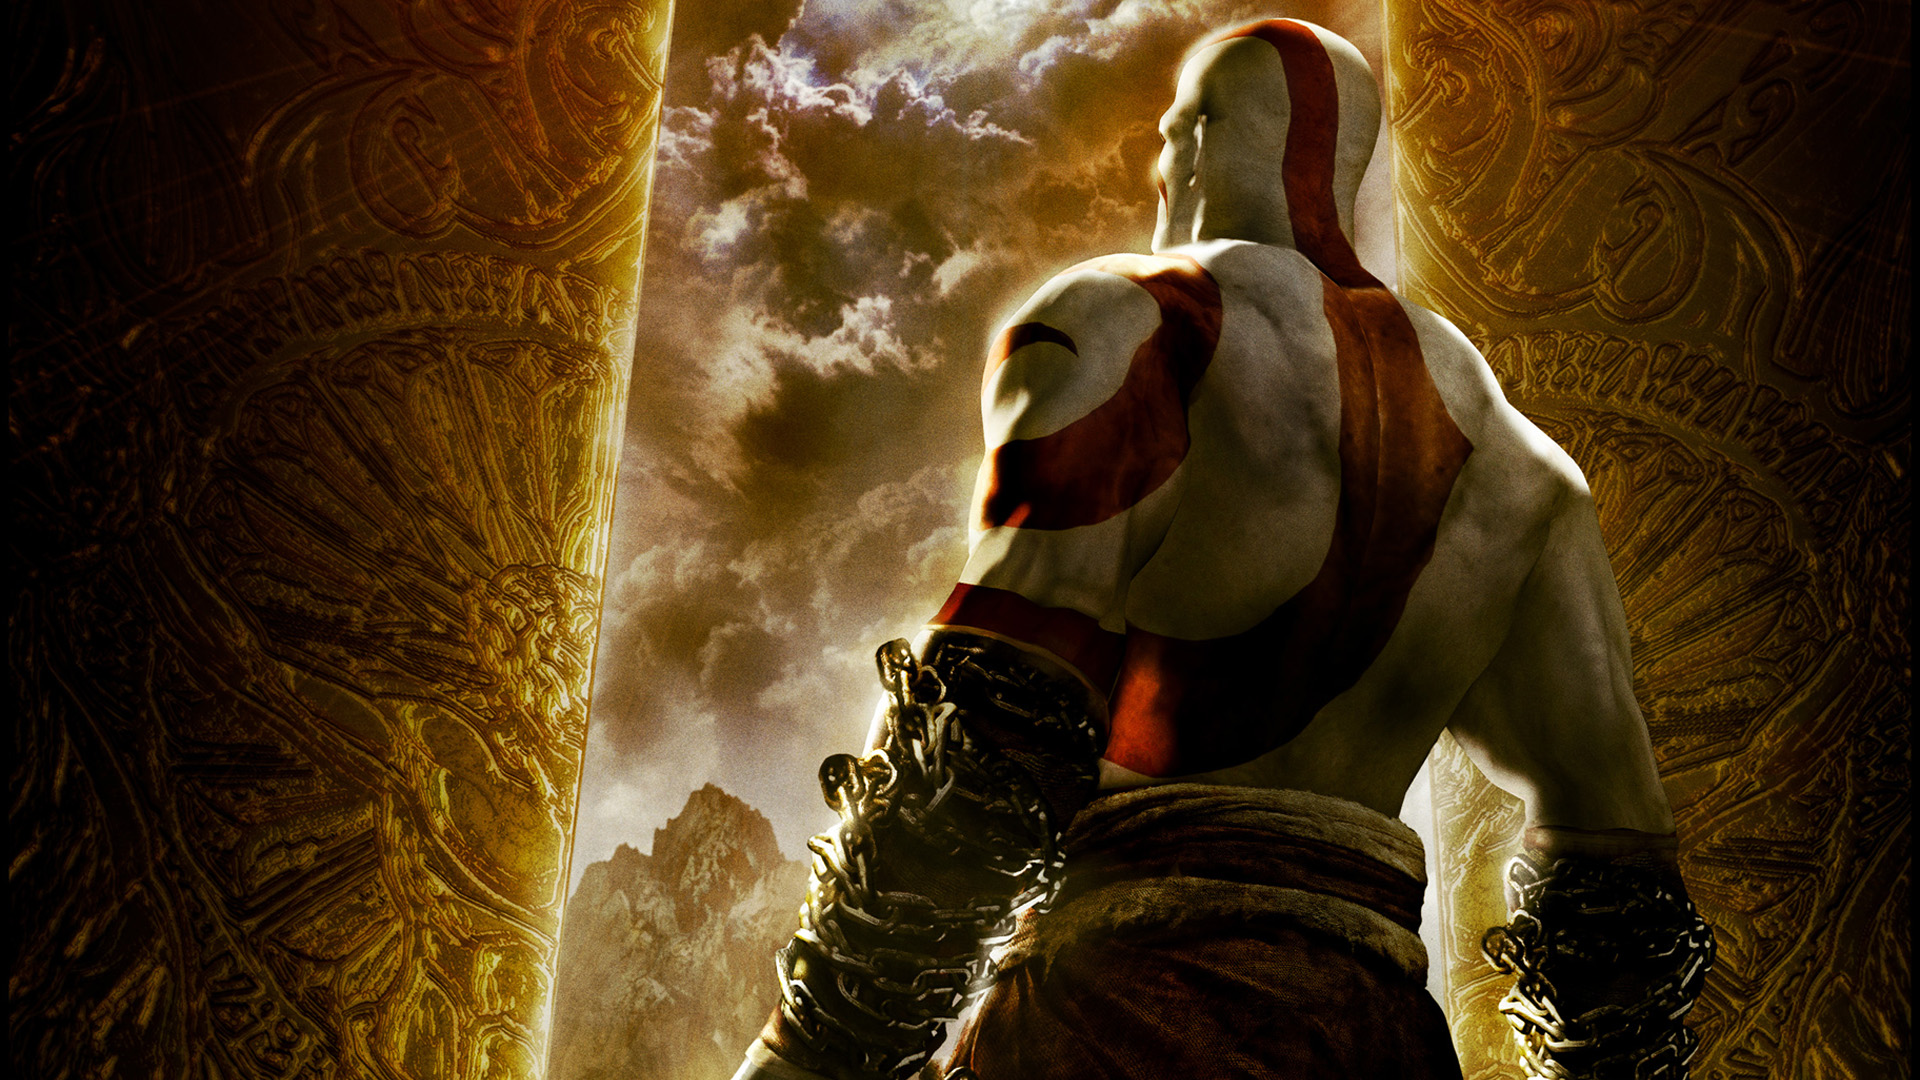 The Ultimate God of War Wallpapers PS3 Wallpaper Installation Directions